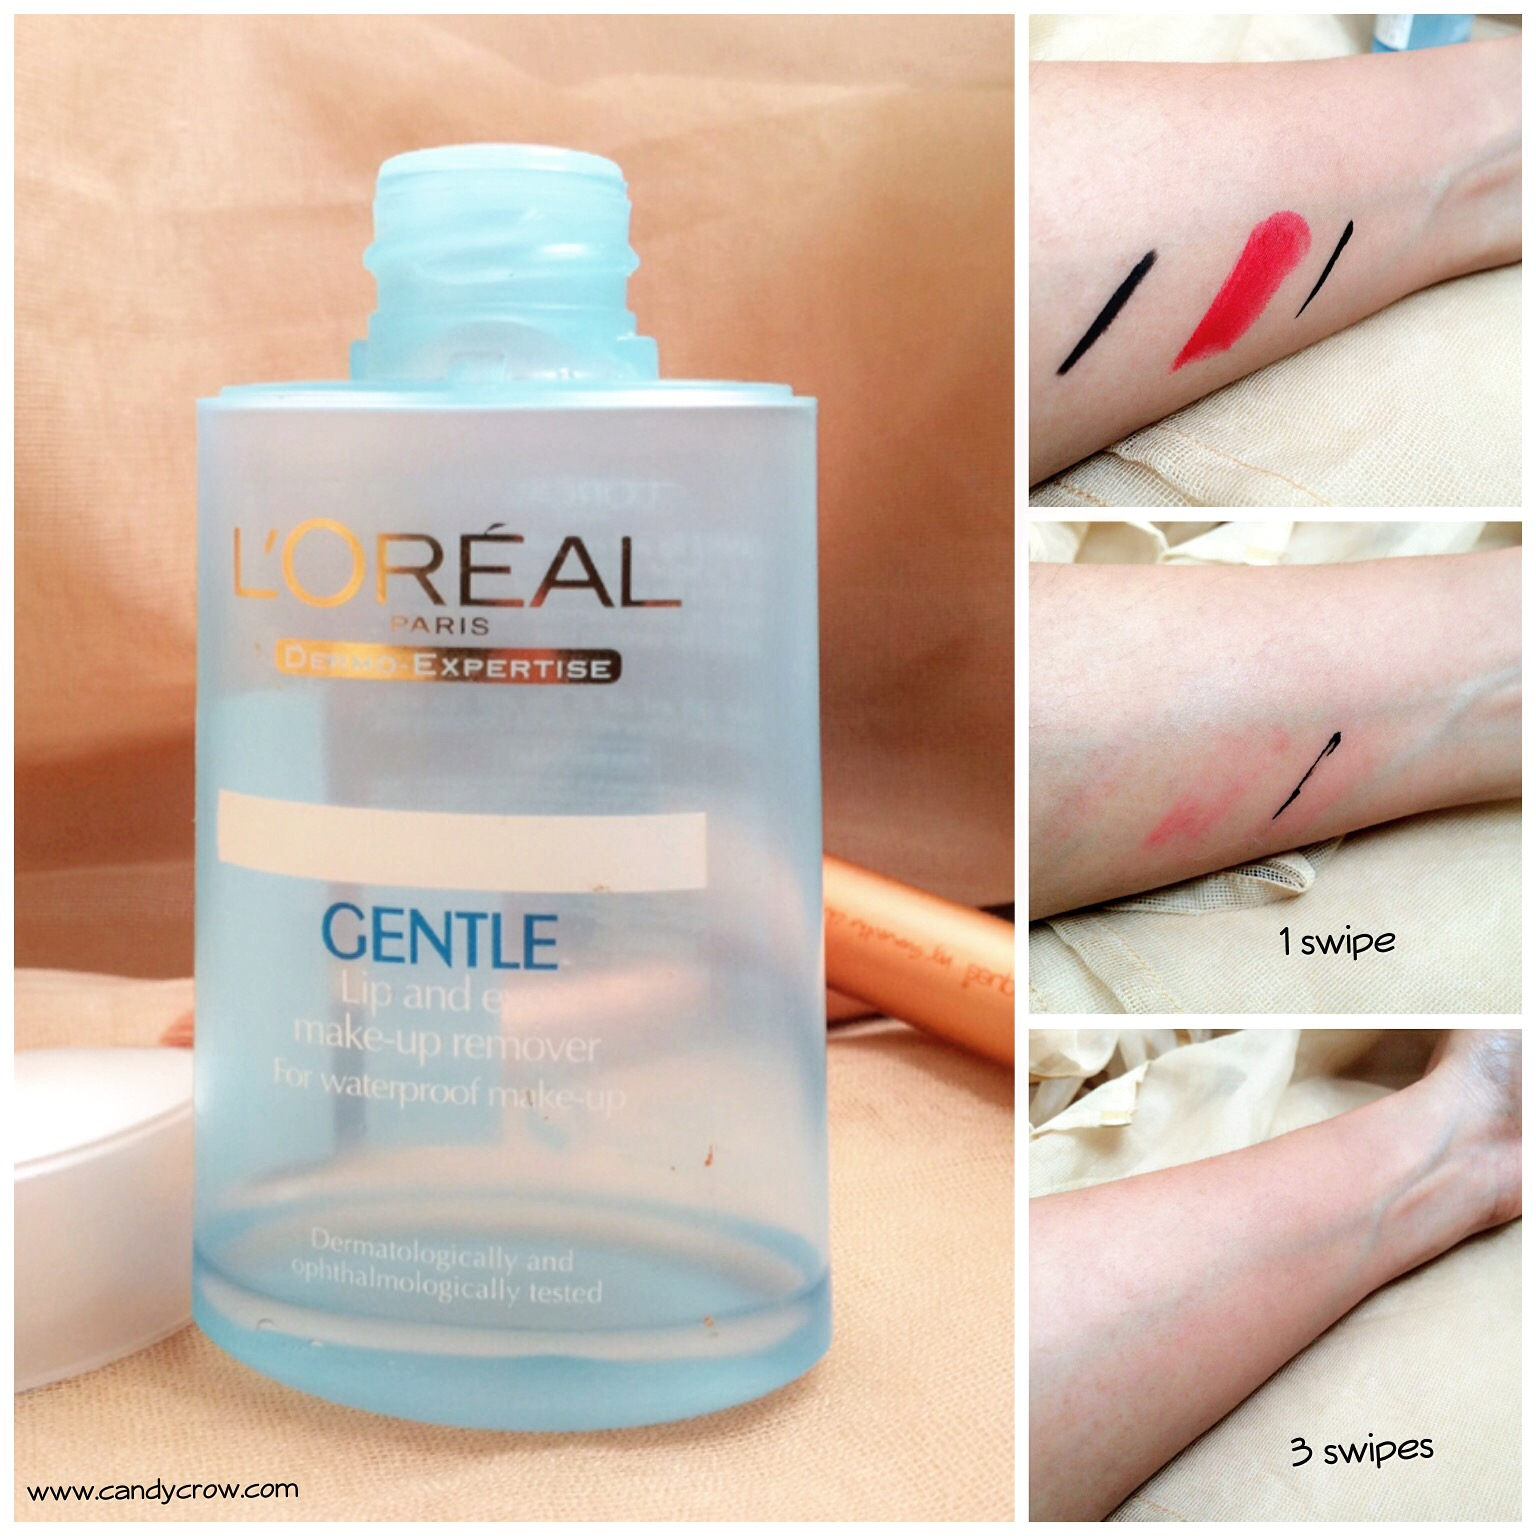 Loreal Gentle Lip And Eye Makeup Remover Review Indian Beauty